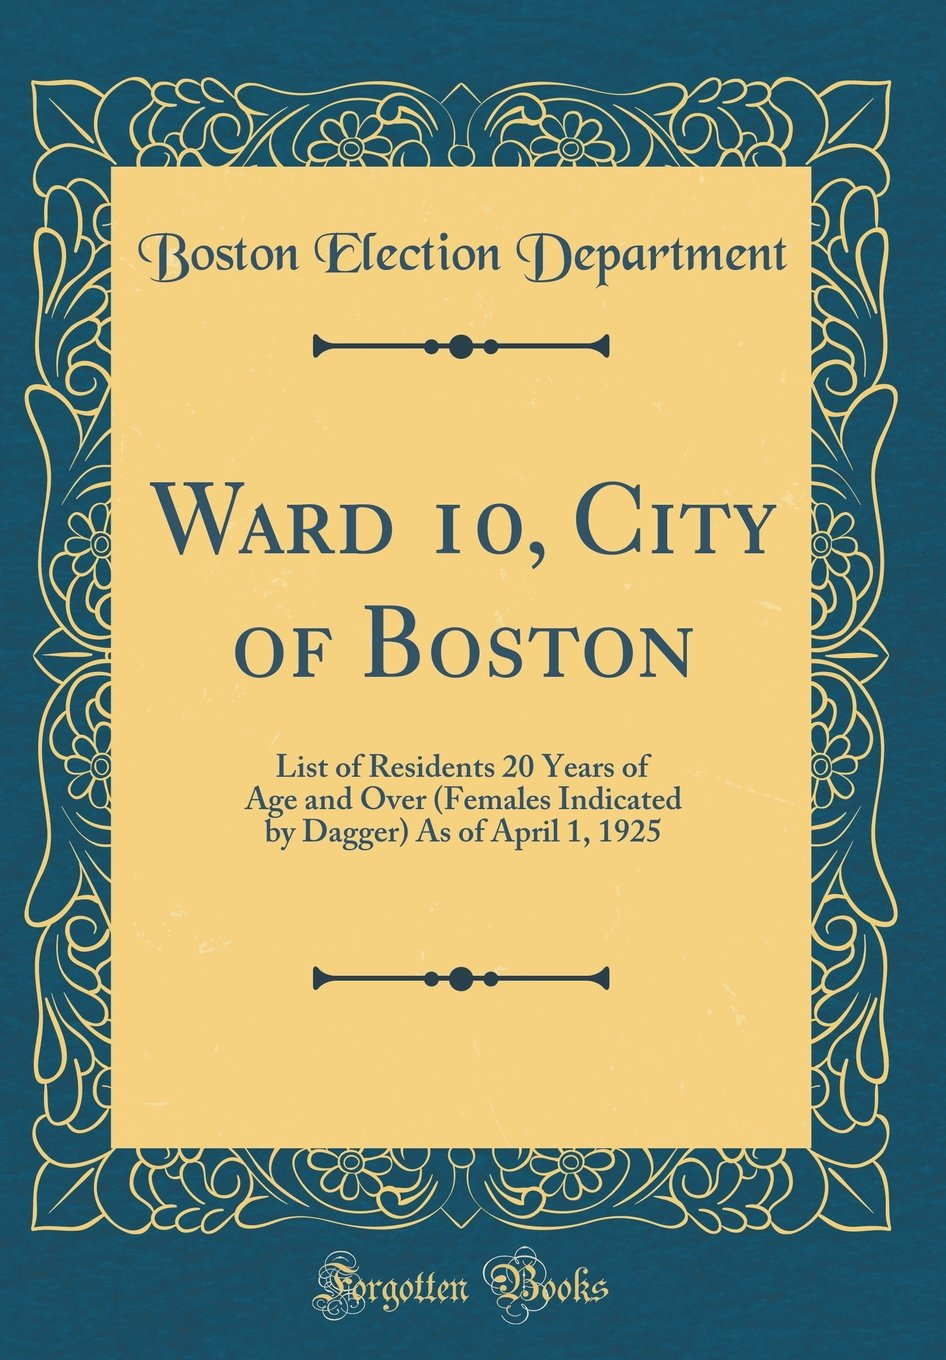 Ward 10, City of Boston: List of Residents 20 Years of Age and Over (Females Indicated by Dagger) As of April 1, 1925 (Classic Reprint) pdf